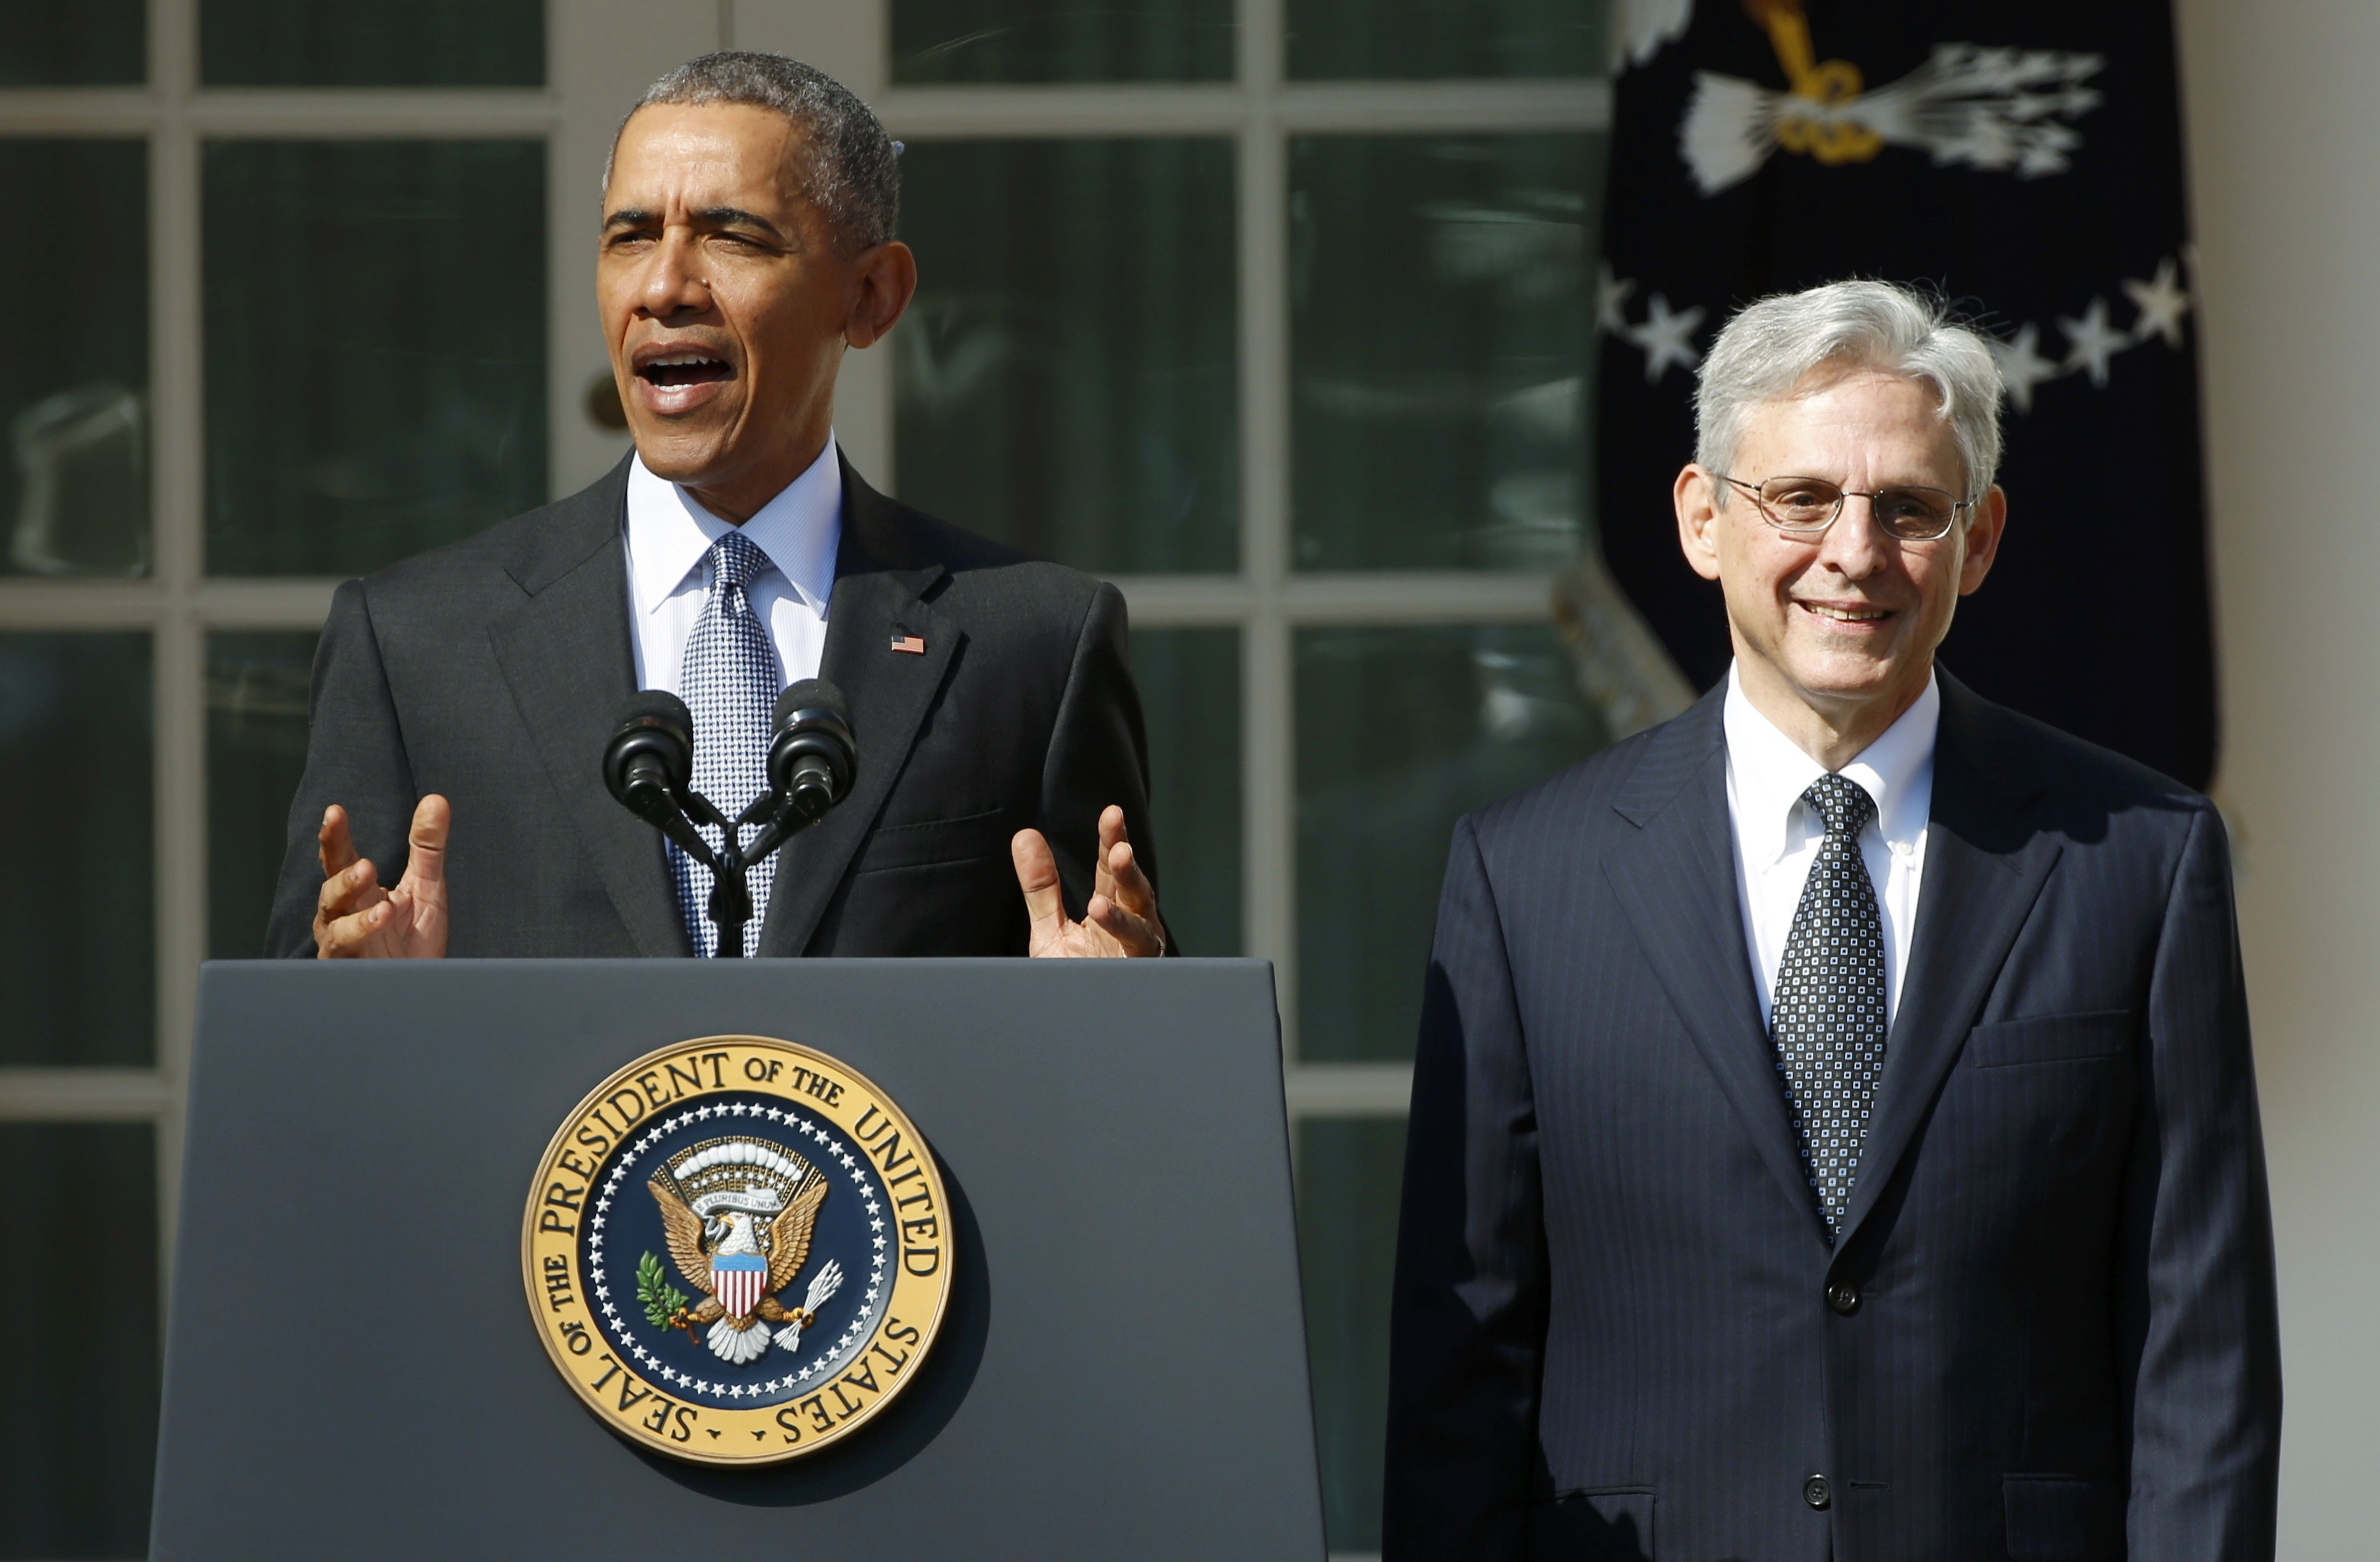 Image: U.S. President Obama announces Judge Garland as Supreme Court nominee at the White House in Washington